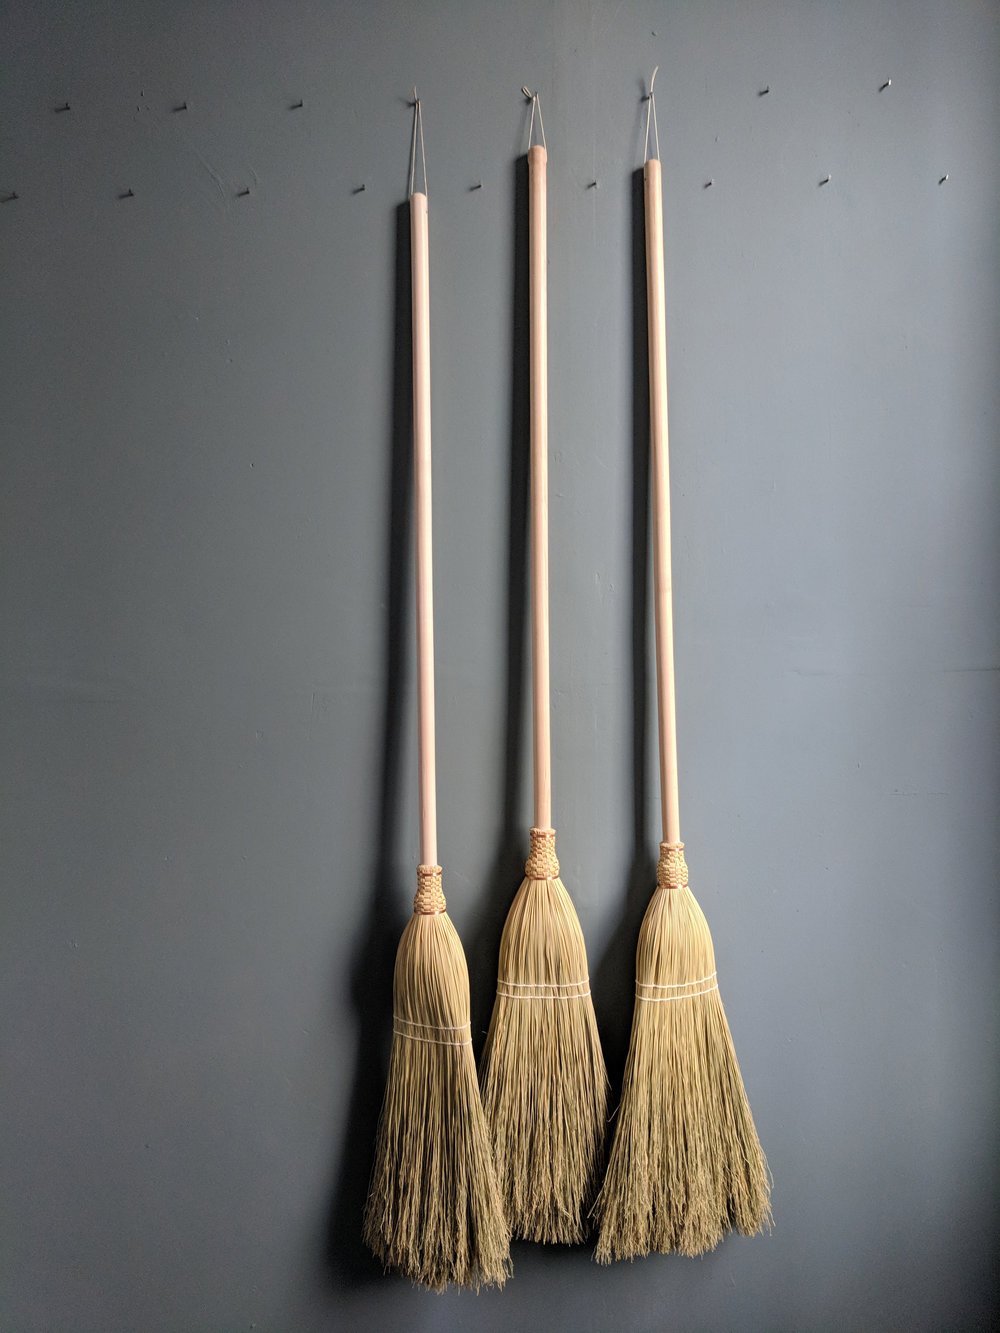 custodian_three brooms.jpg